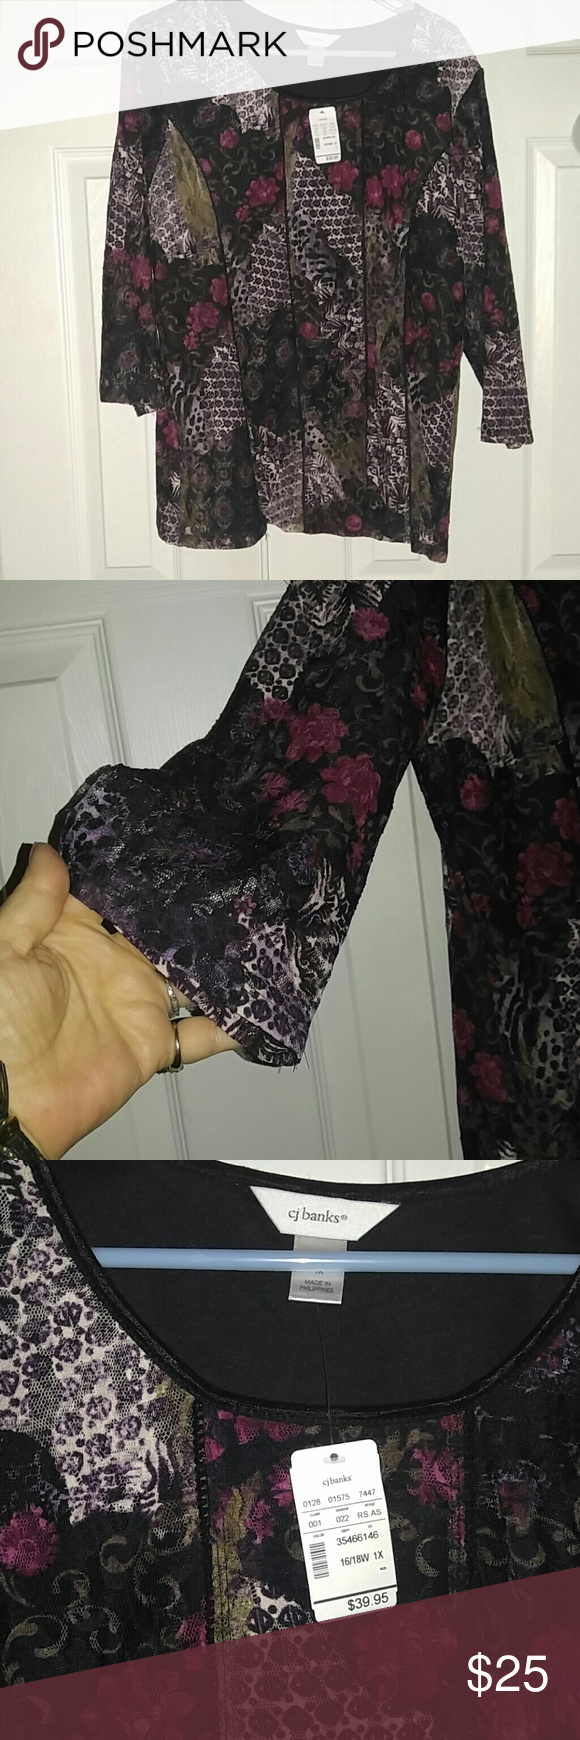 NWT! CJ Banks 3/4 Sleeve Floral Lace Tunic 16/18W Fully lined underneath, so you don't have to worry about wearing something under it! Tags still attached & never even tried on. Nice & flowy..great for this weather! Pretty floral design! Non smoking home. Sz 1X  NO TRADES CJ Banks Tops Tunics